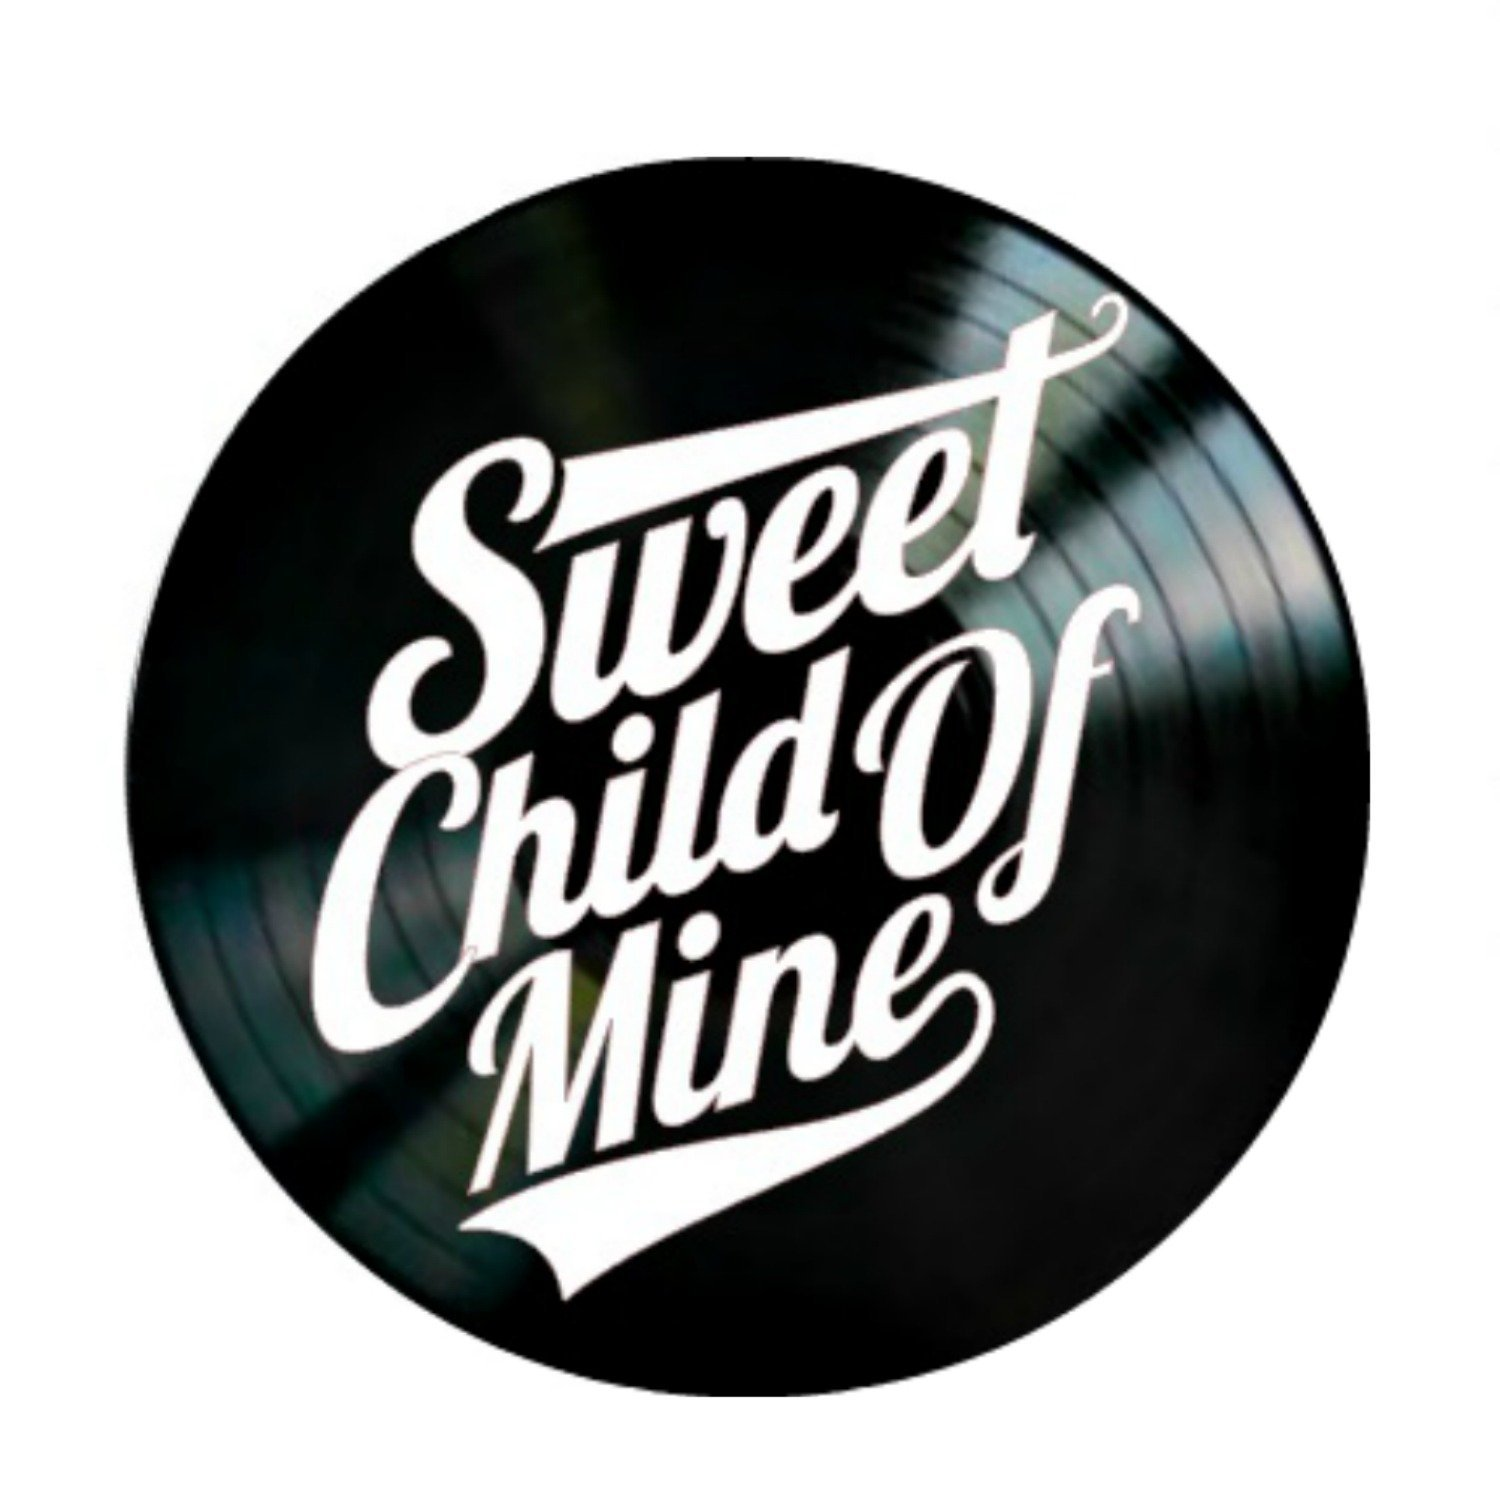 Sweet Child of Mine song lyrics by Guns N'Roses on a Vinyl Record Album Wall Art